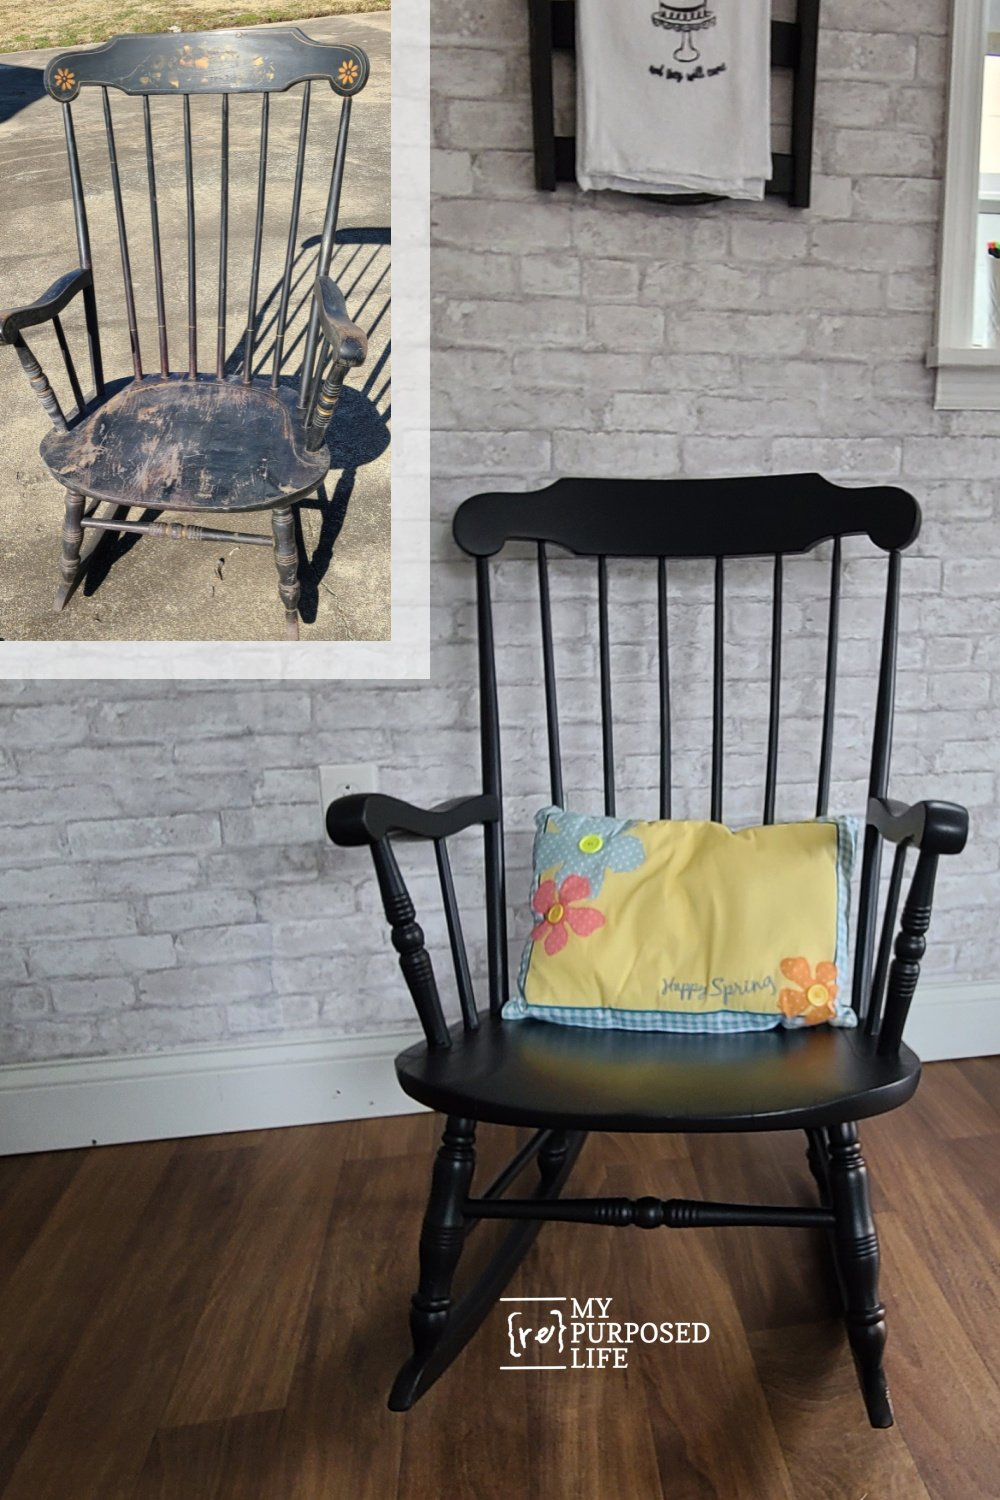 Steps for saving an old abused chair. In this wooden rocking chair makeover tutorial, you will see steps to bring an old piece back to life. Most people would throw this chair away. But it still had a lot of life left. #myrepurposedlife #trashtotreasure #furniture #makeover via @repurposedlife